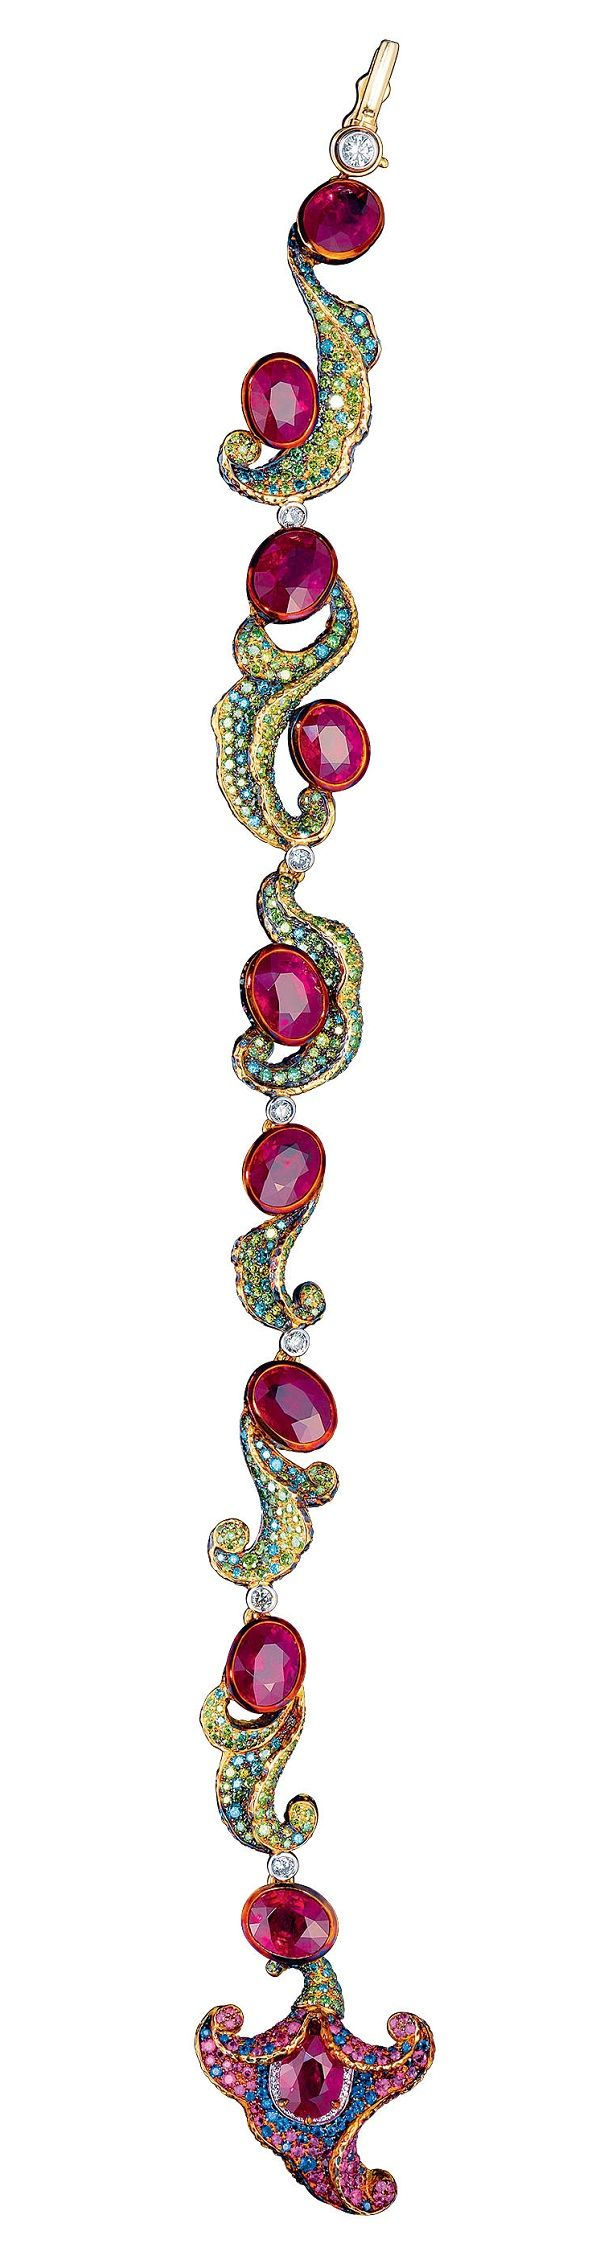 Matching ruby bracelet that can also be used as an extension on the necklace.